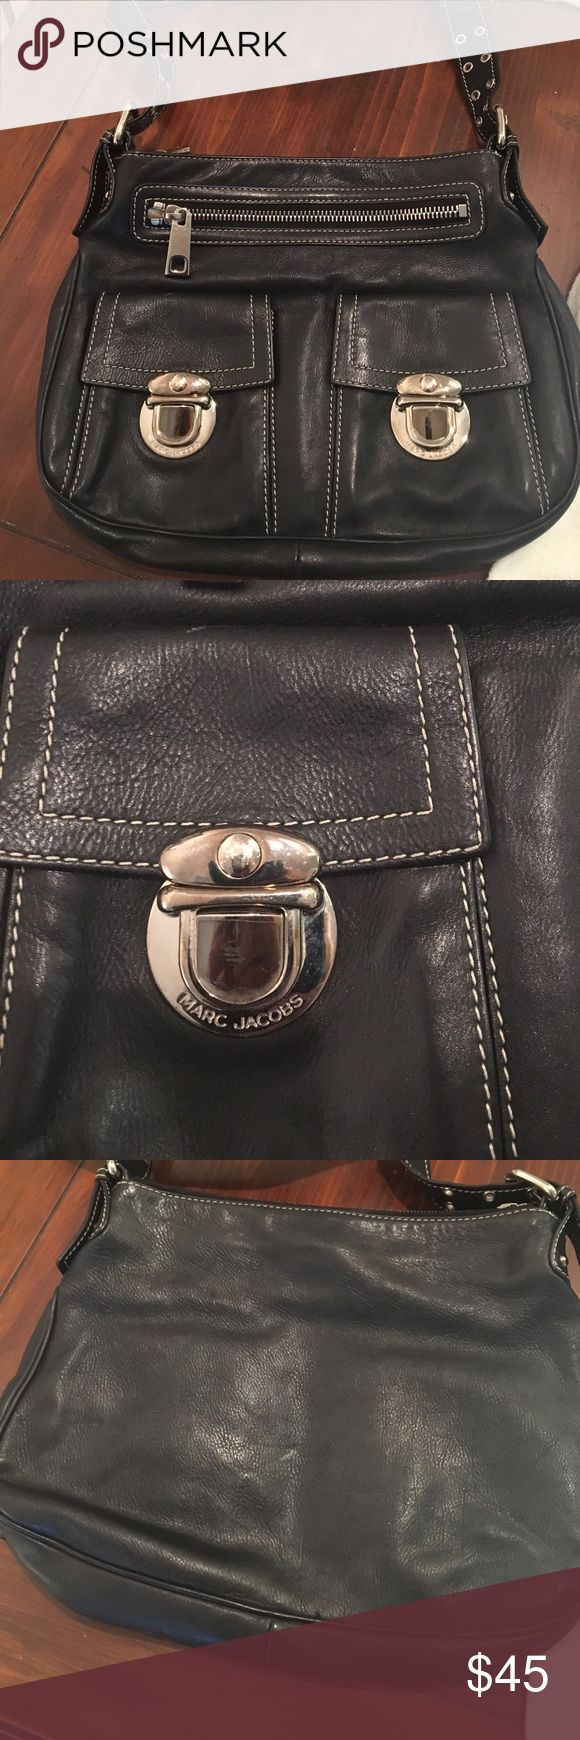 Marc Jacobs Purse Good condition leather Marc Jacobs black purse Marc Jacobs Bags Shoulder Bags